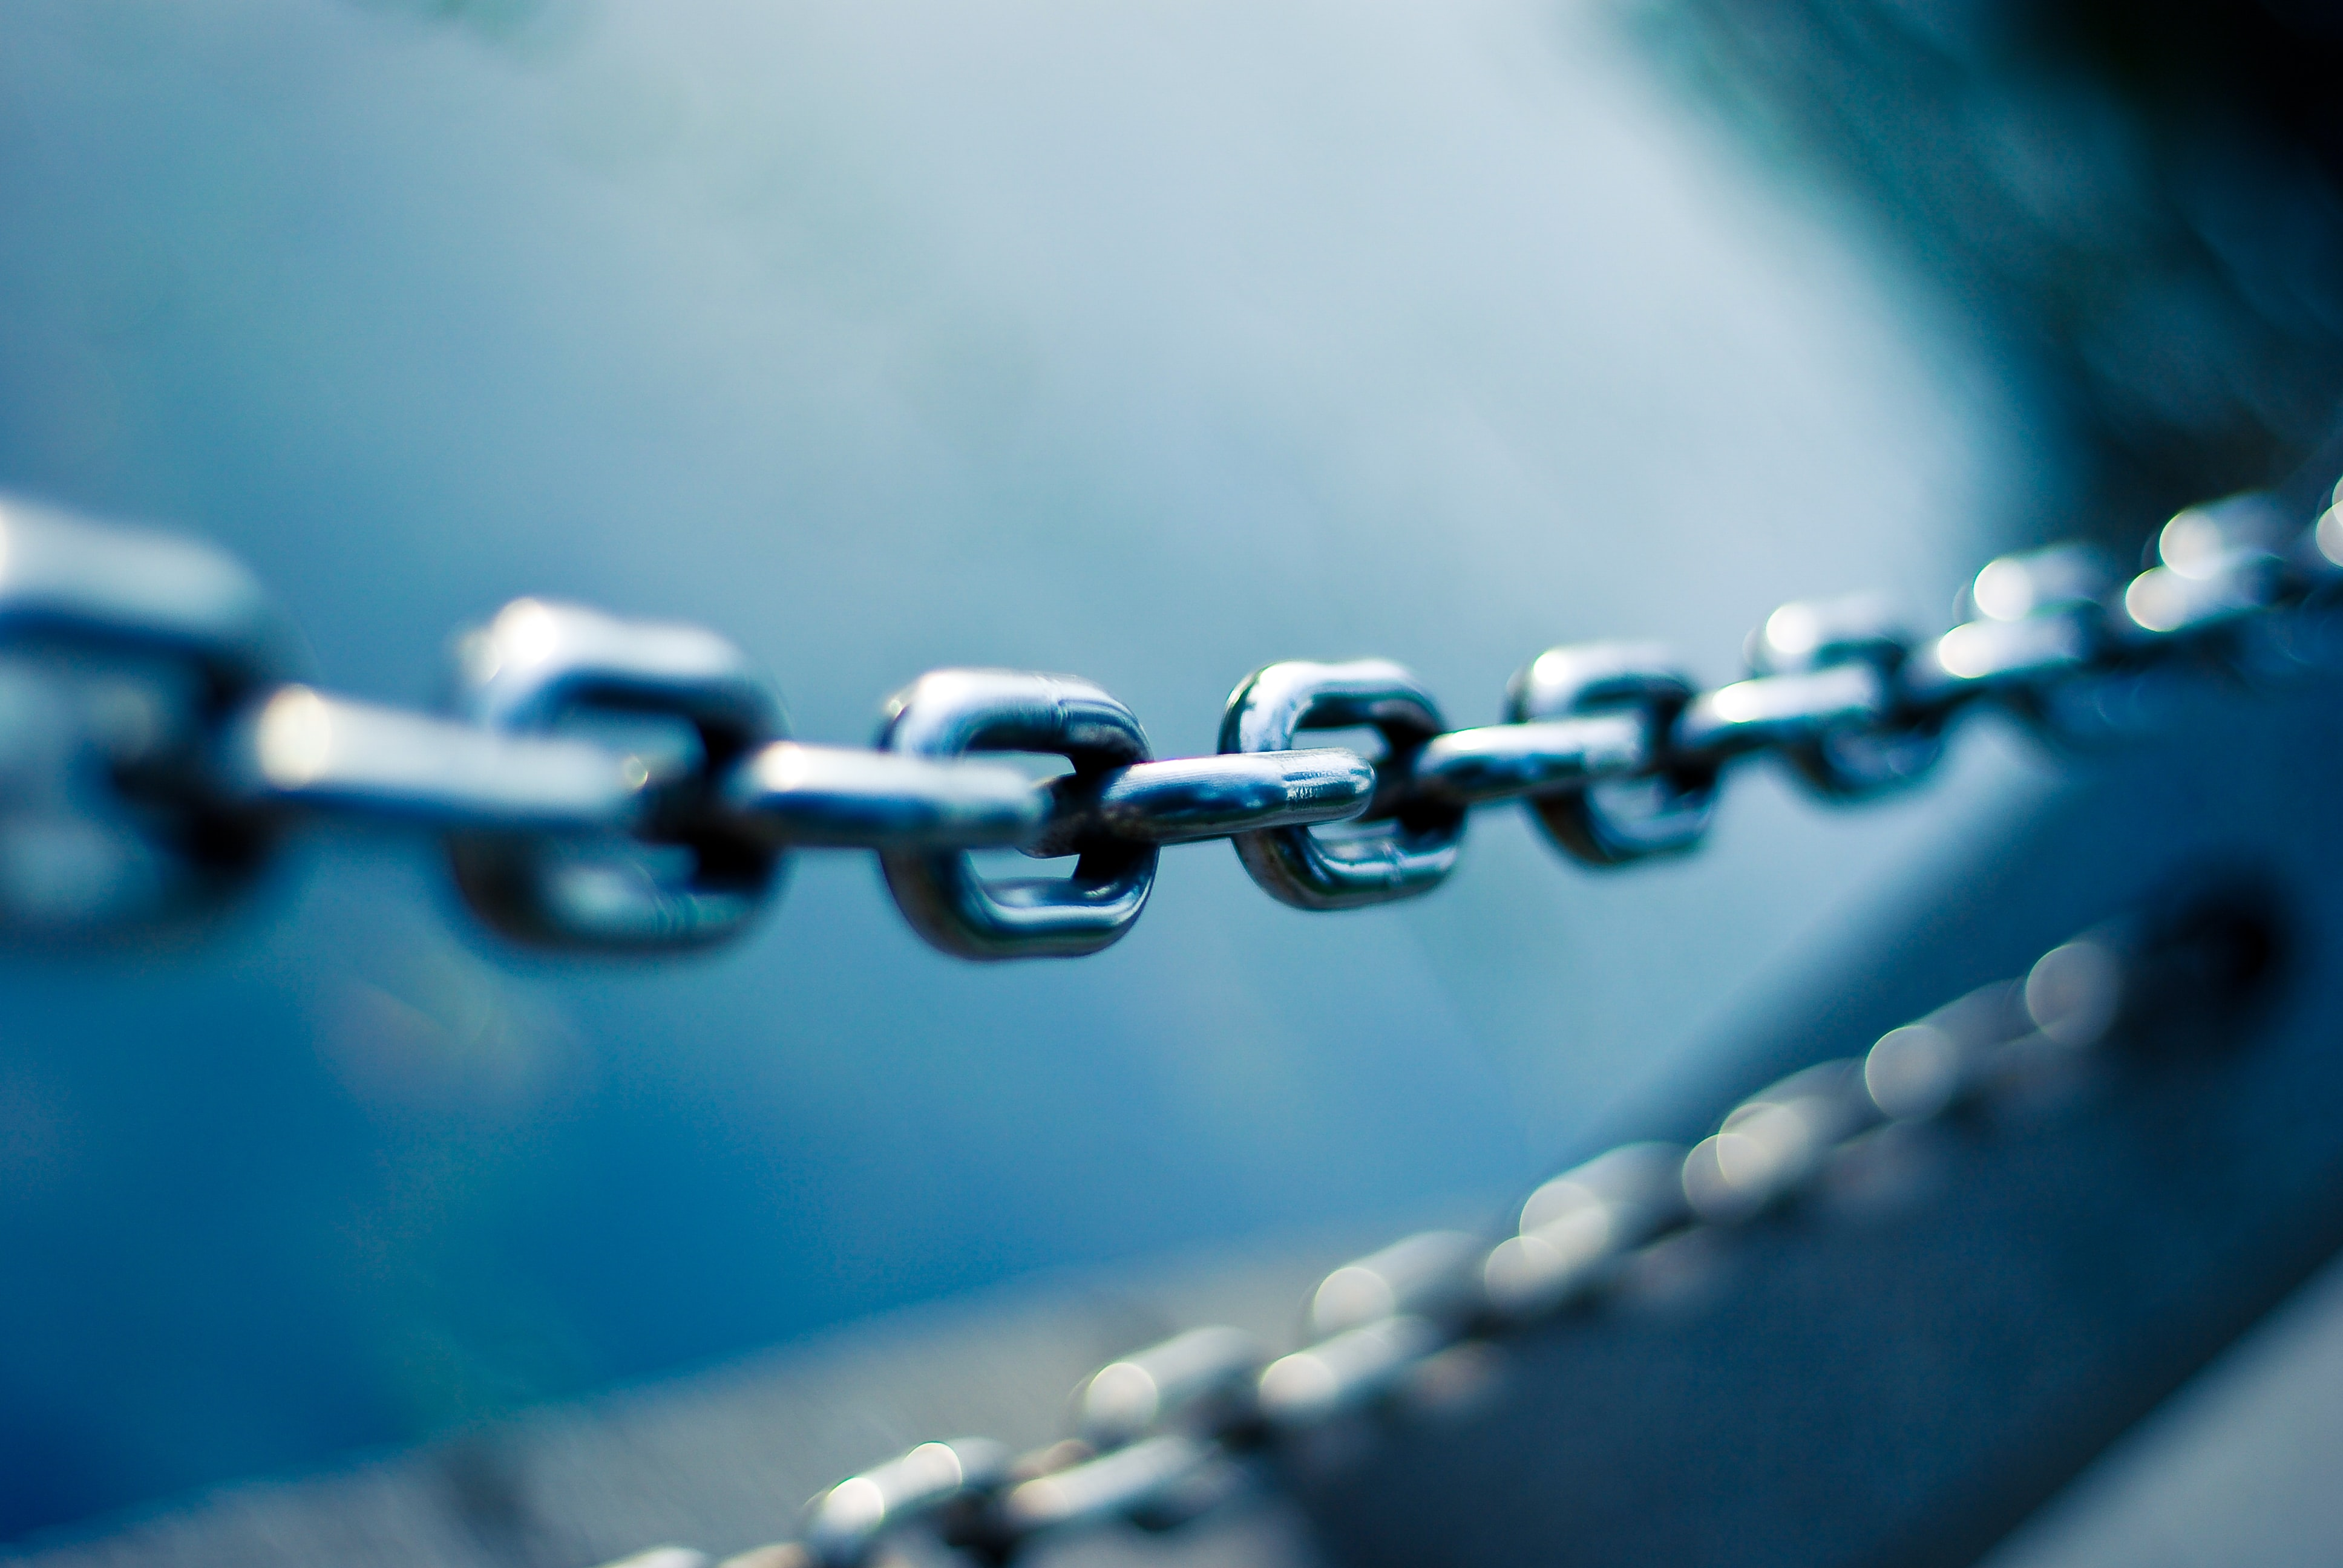 A metal chain used as the symbol for links.